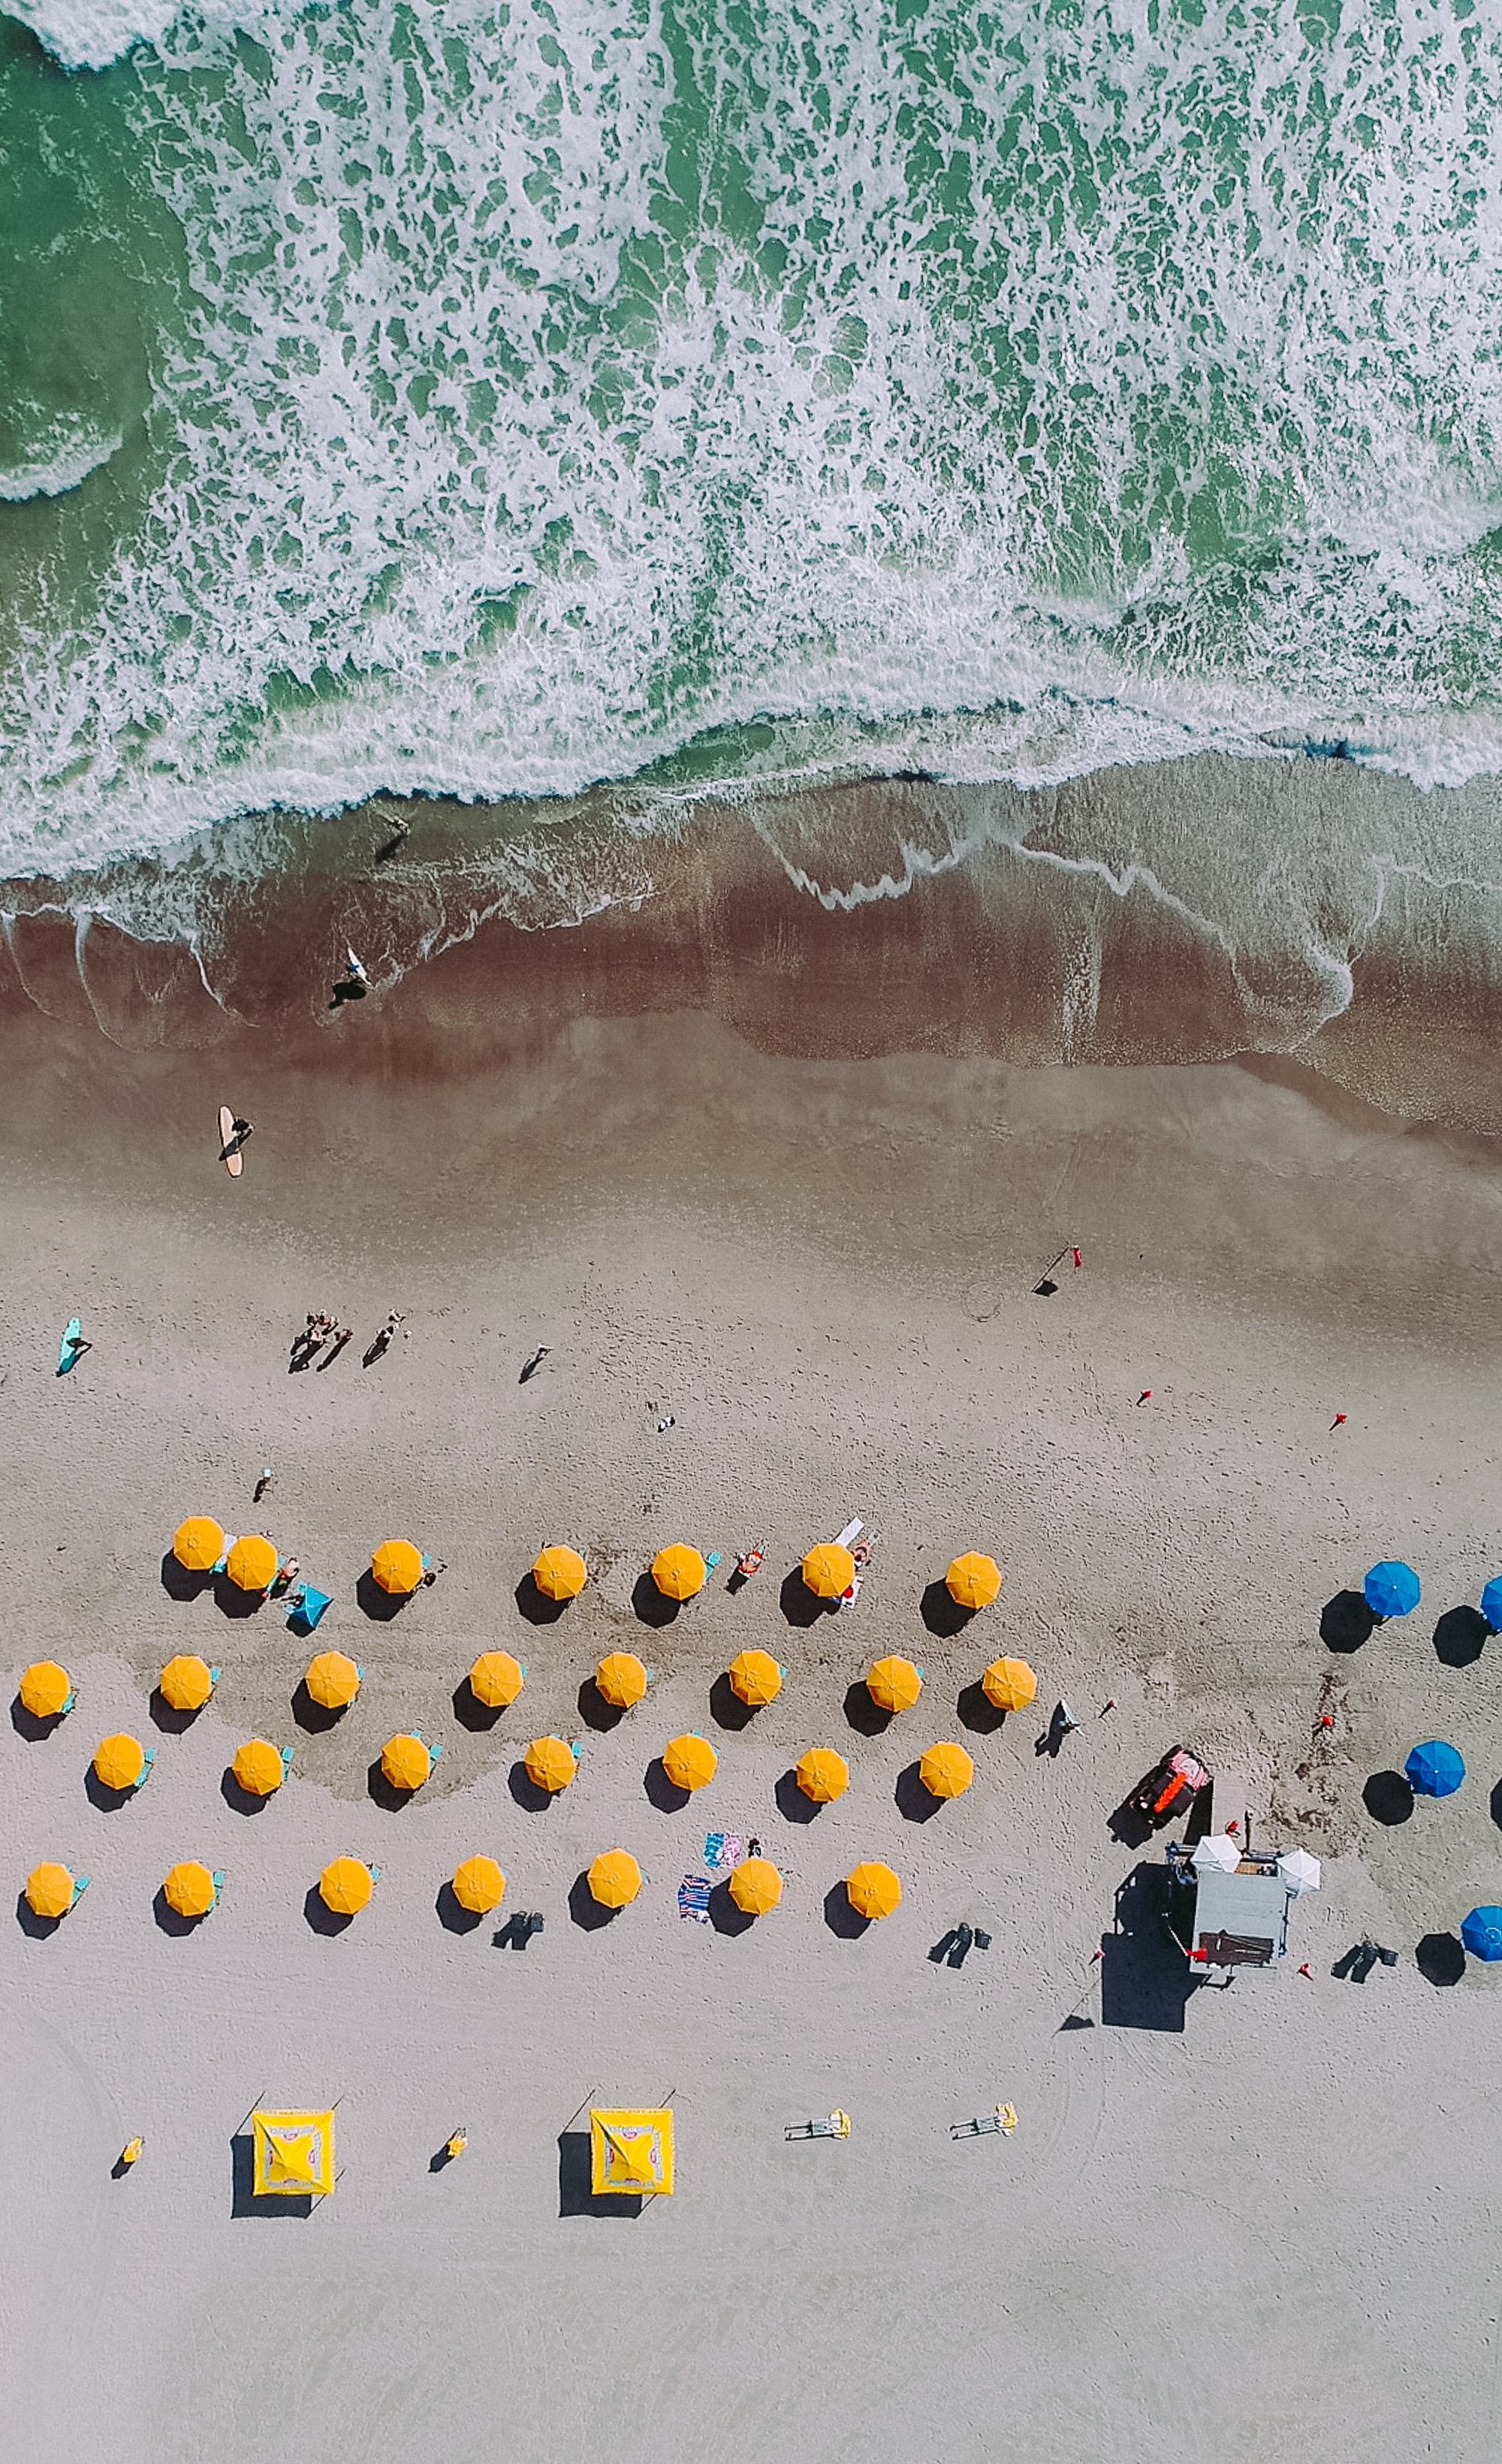 An aerial shot of a sandy beach with rows of yellow and blue umbrellas